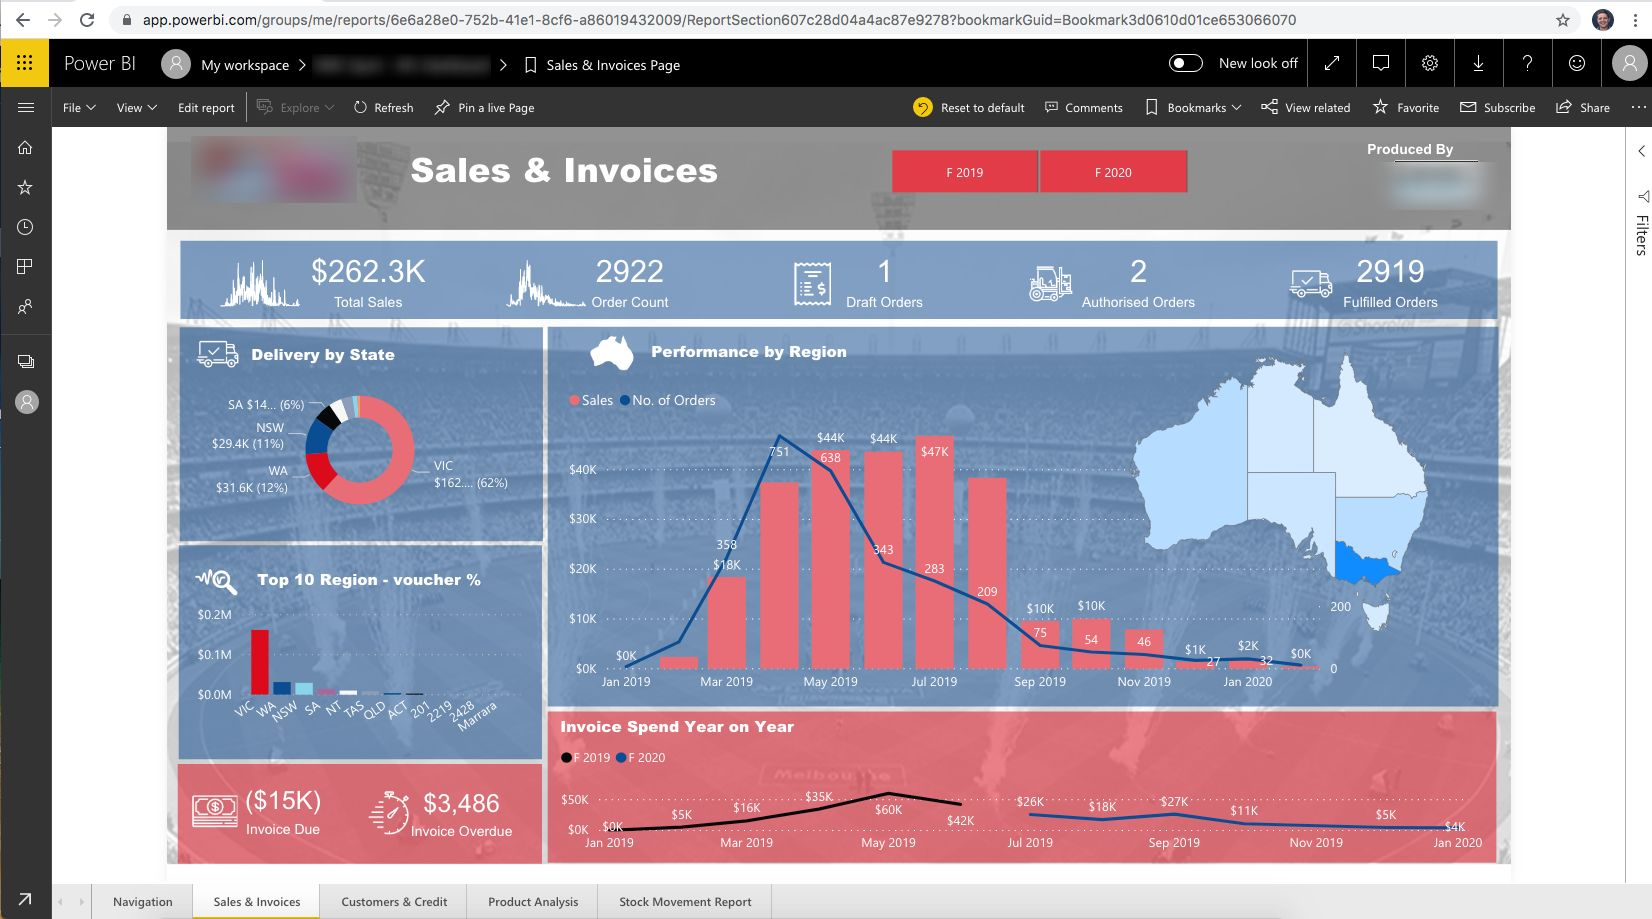 DEAR Inventory Power BI Dashboard